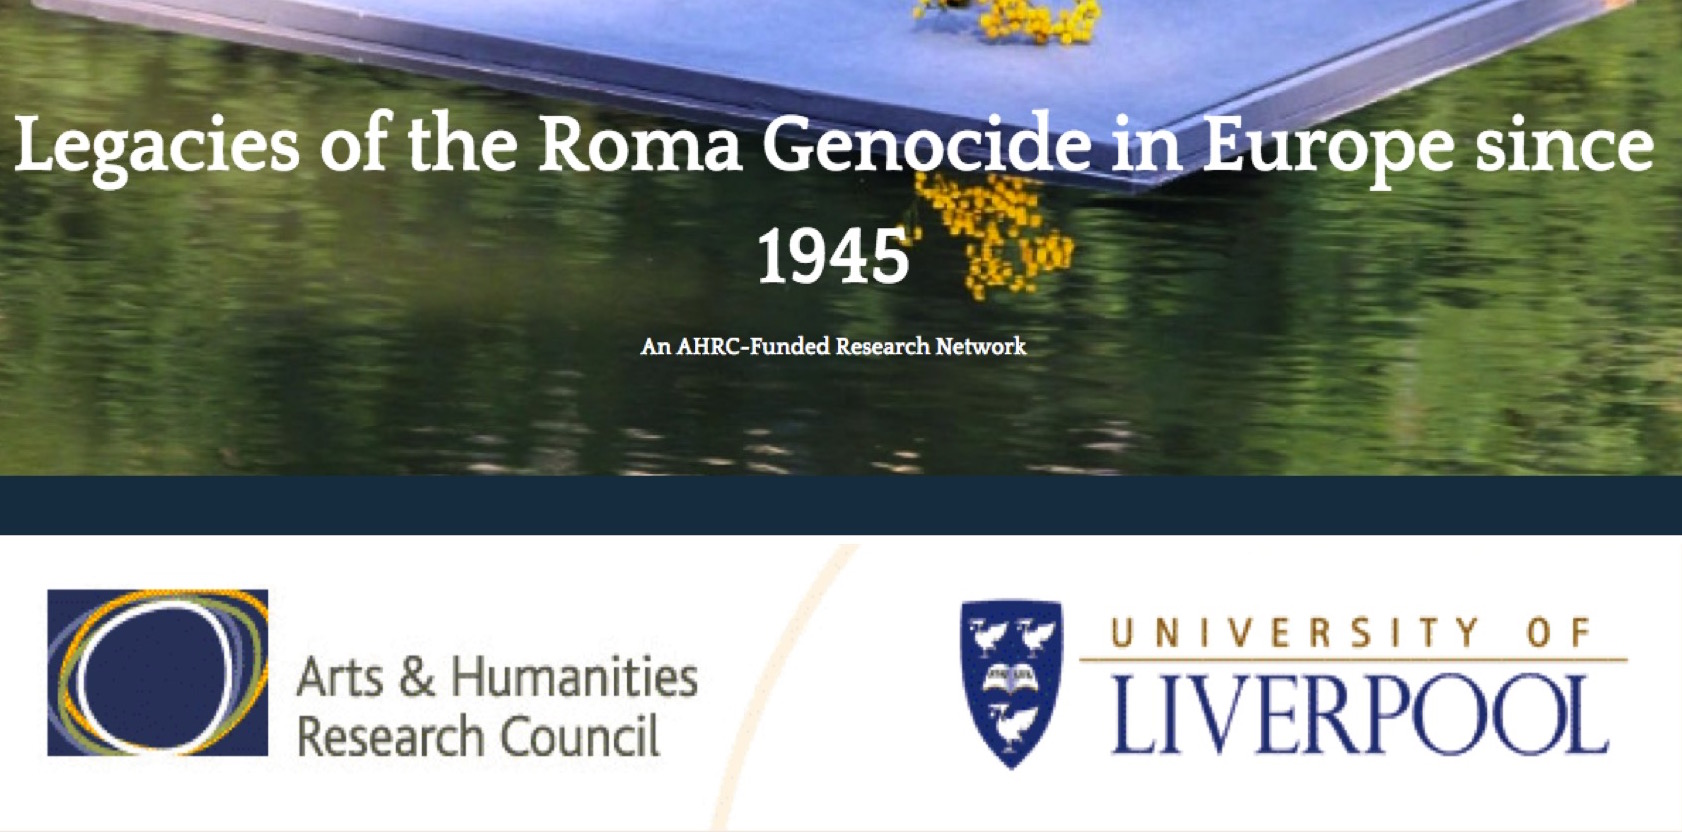 Legacies of the Roma Genocide